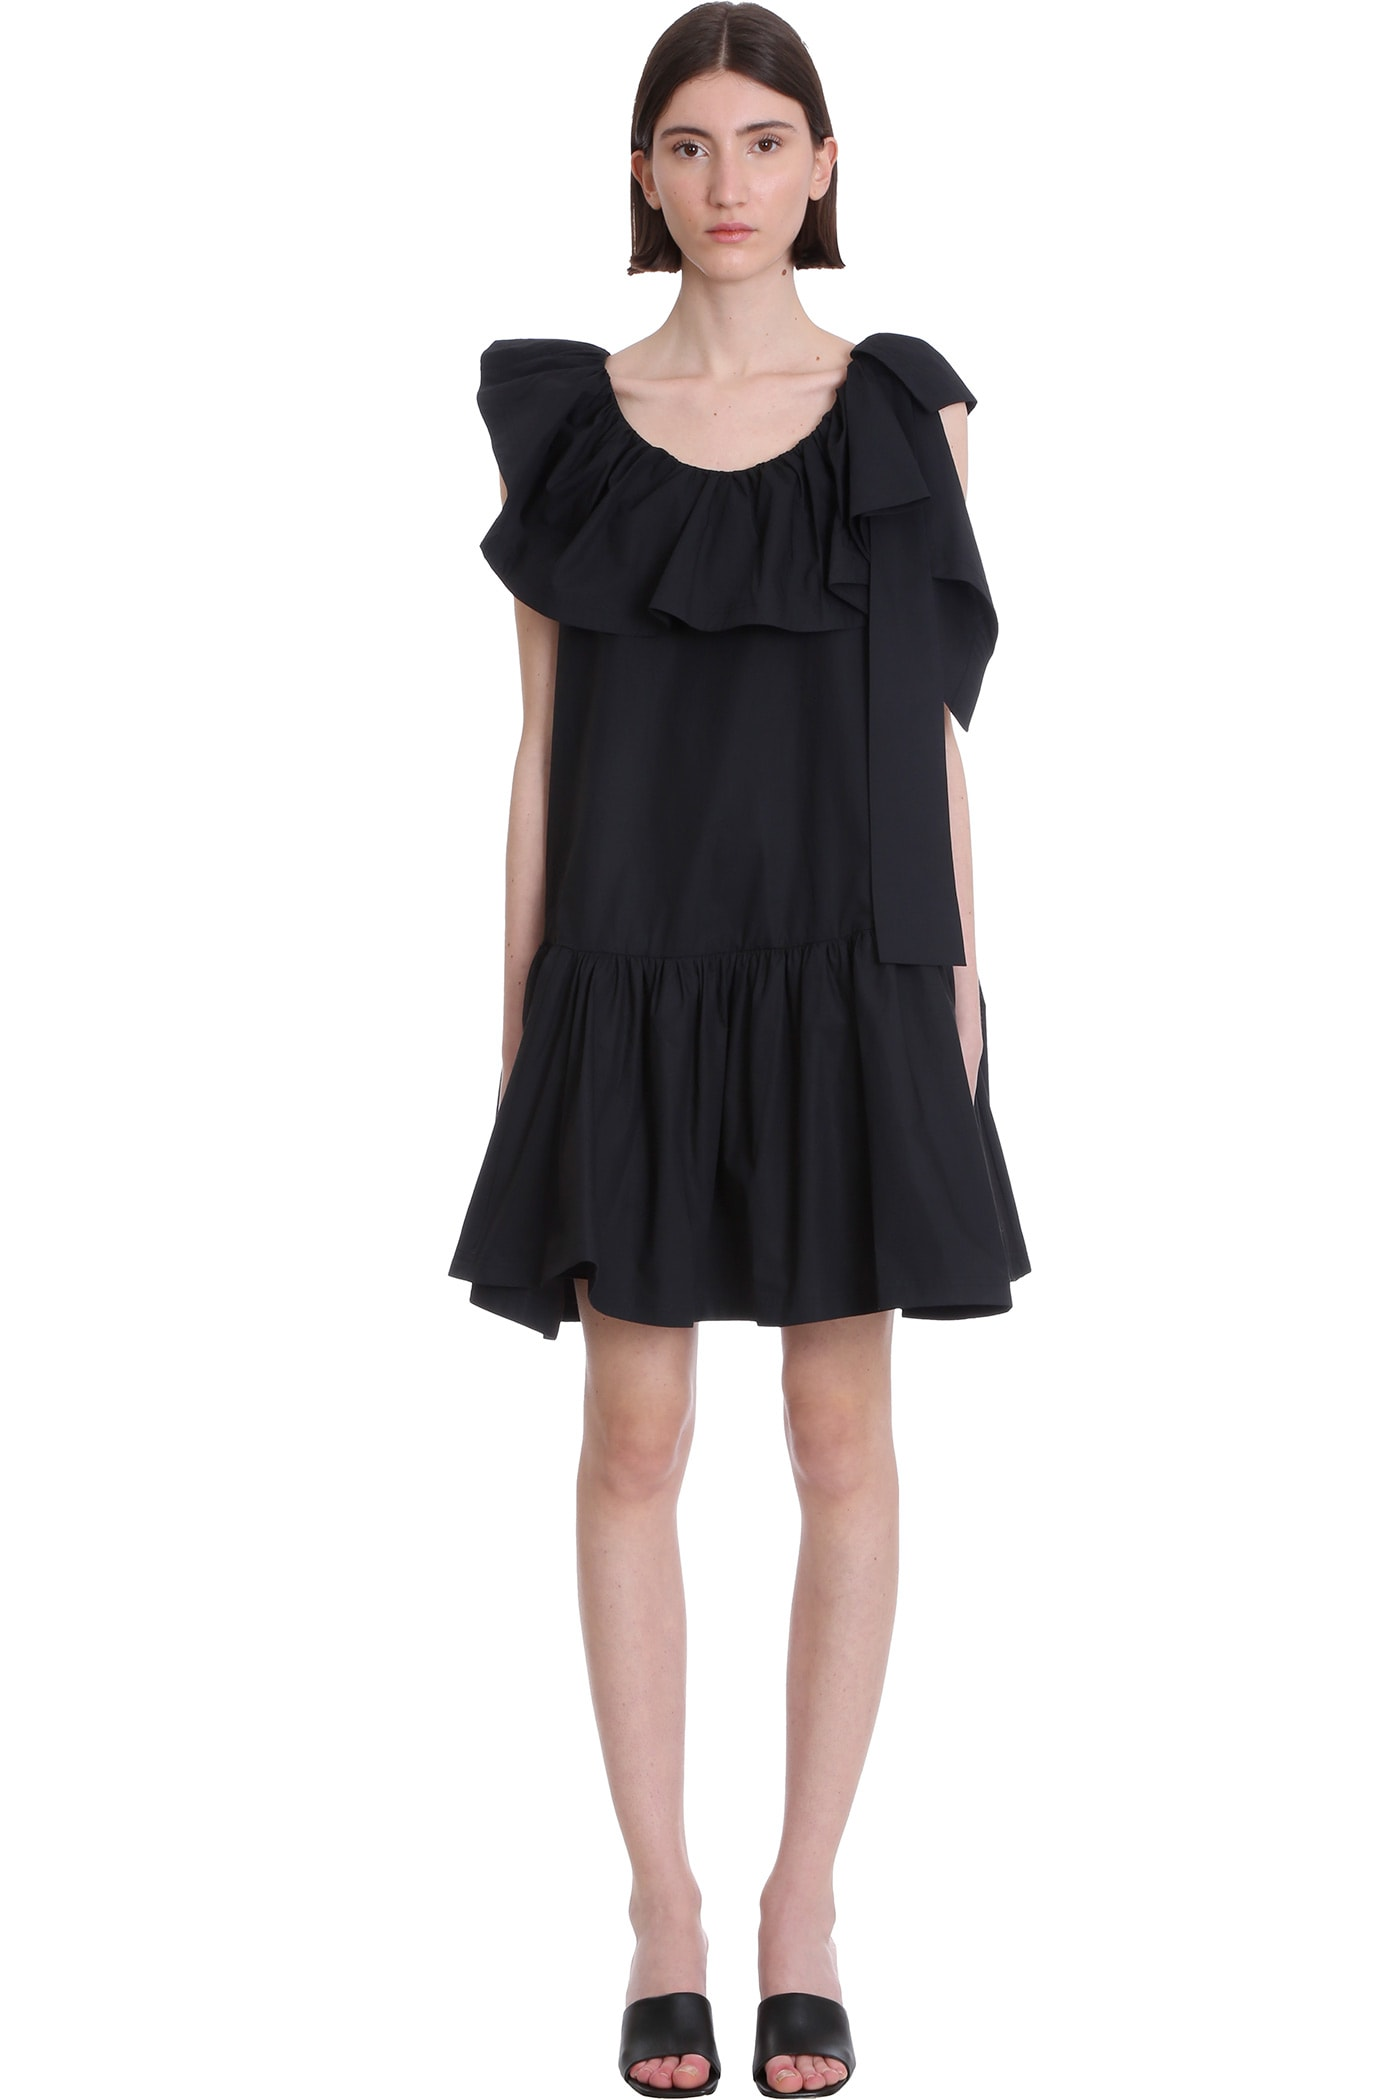 Buy 3.1 Phillip Lim Tent Dress In Black Cotton online, shop 3.1 Phillip Lim with free shipping